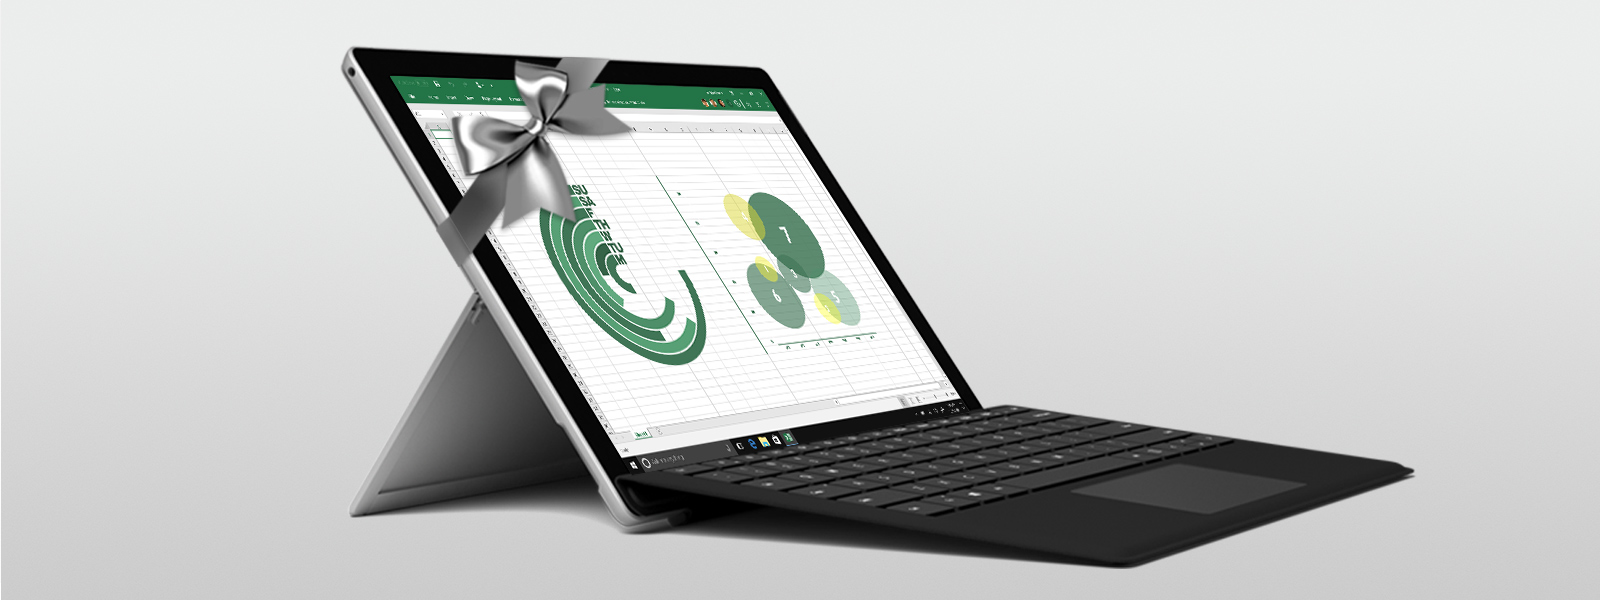 Image of Surface Pro device